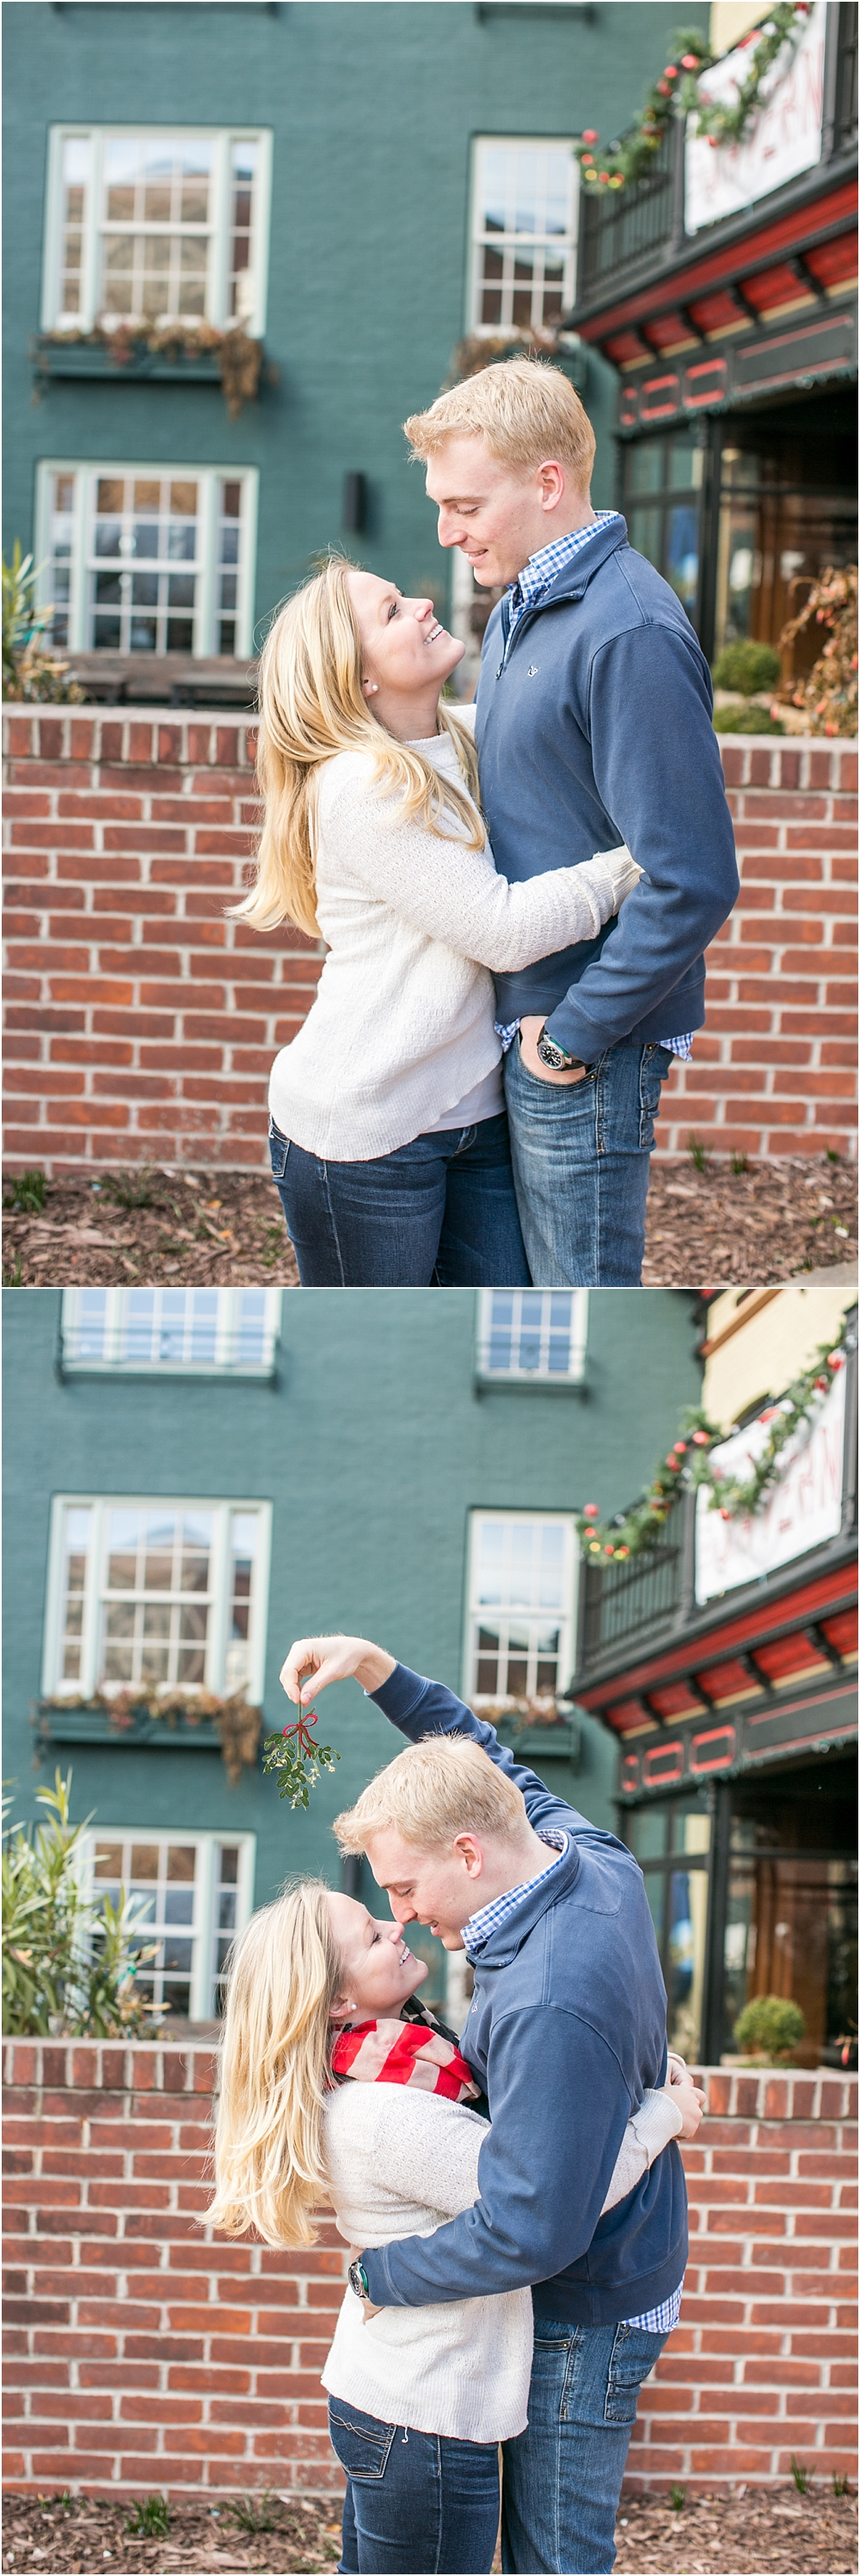 Jenna Robert Fells Point Baltimore Engagement Session Living Radiant Photography photos-28.jpg